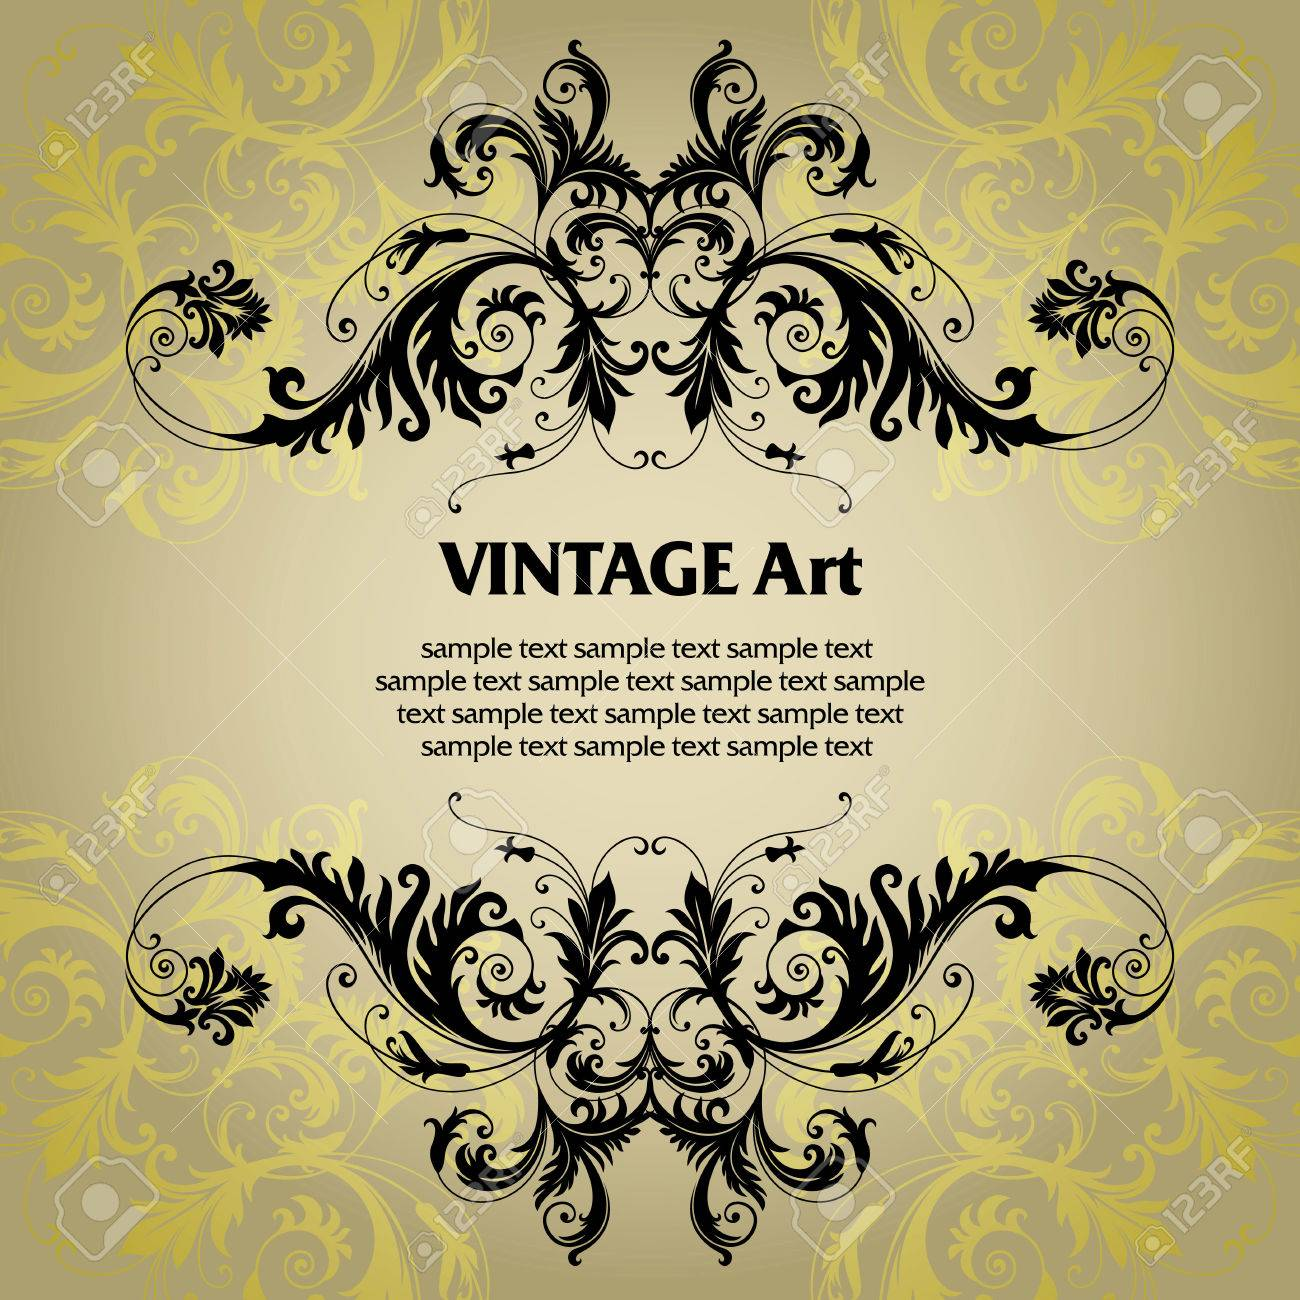 vector vintage template frame In flower style Stock Vector - 4985559